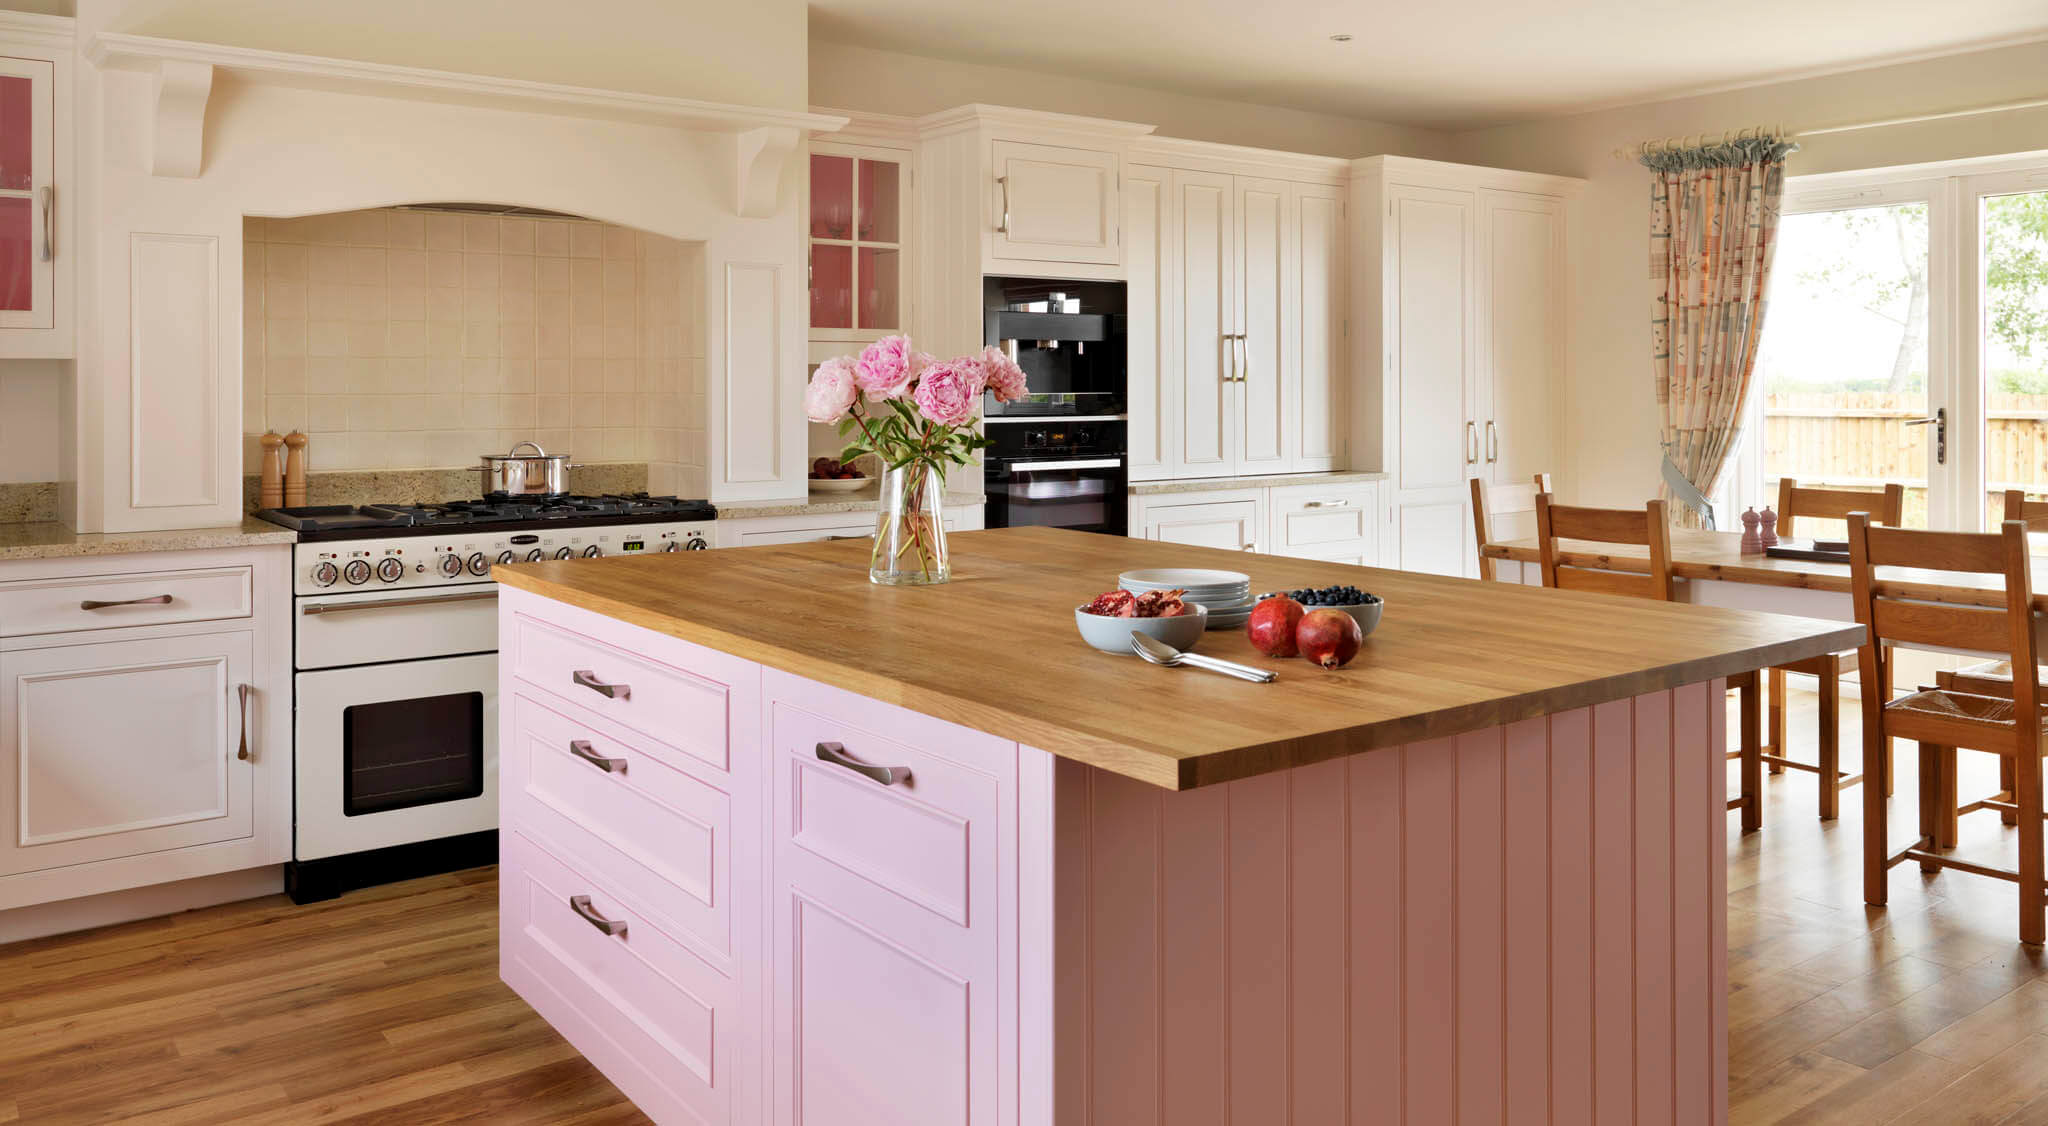 Handpainted Pink And Cream Original Kitchen